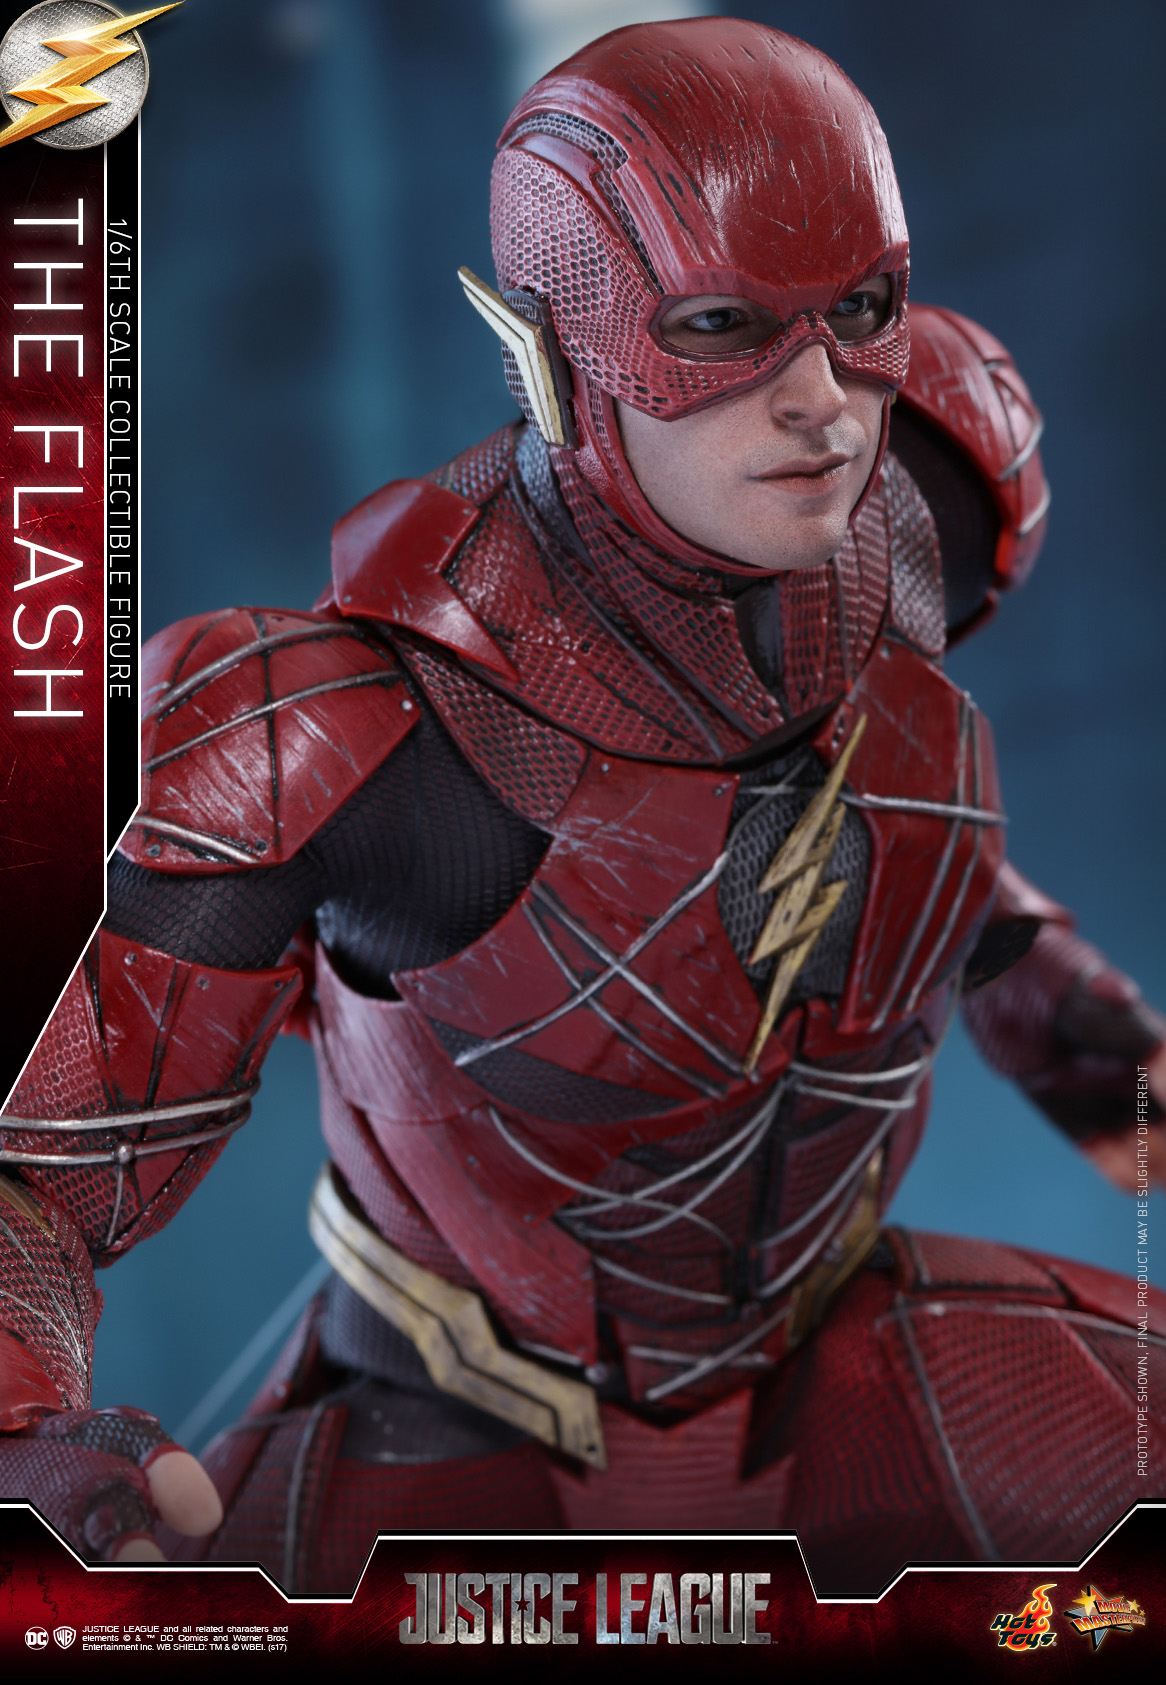 Hot Toys - Justice League - The Flash Collectible Figure_PR05.jpg